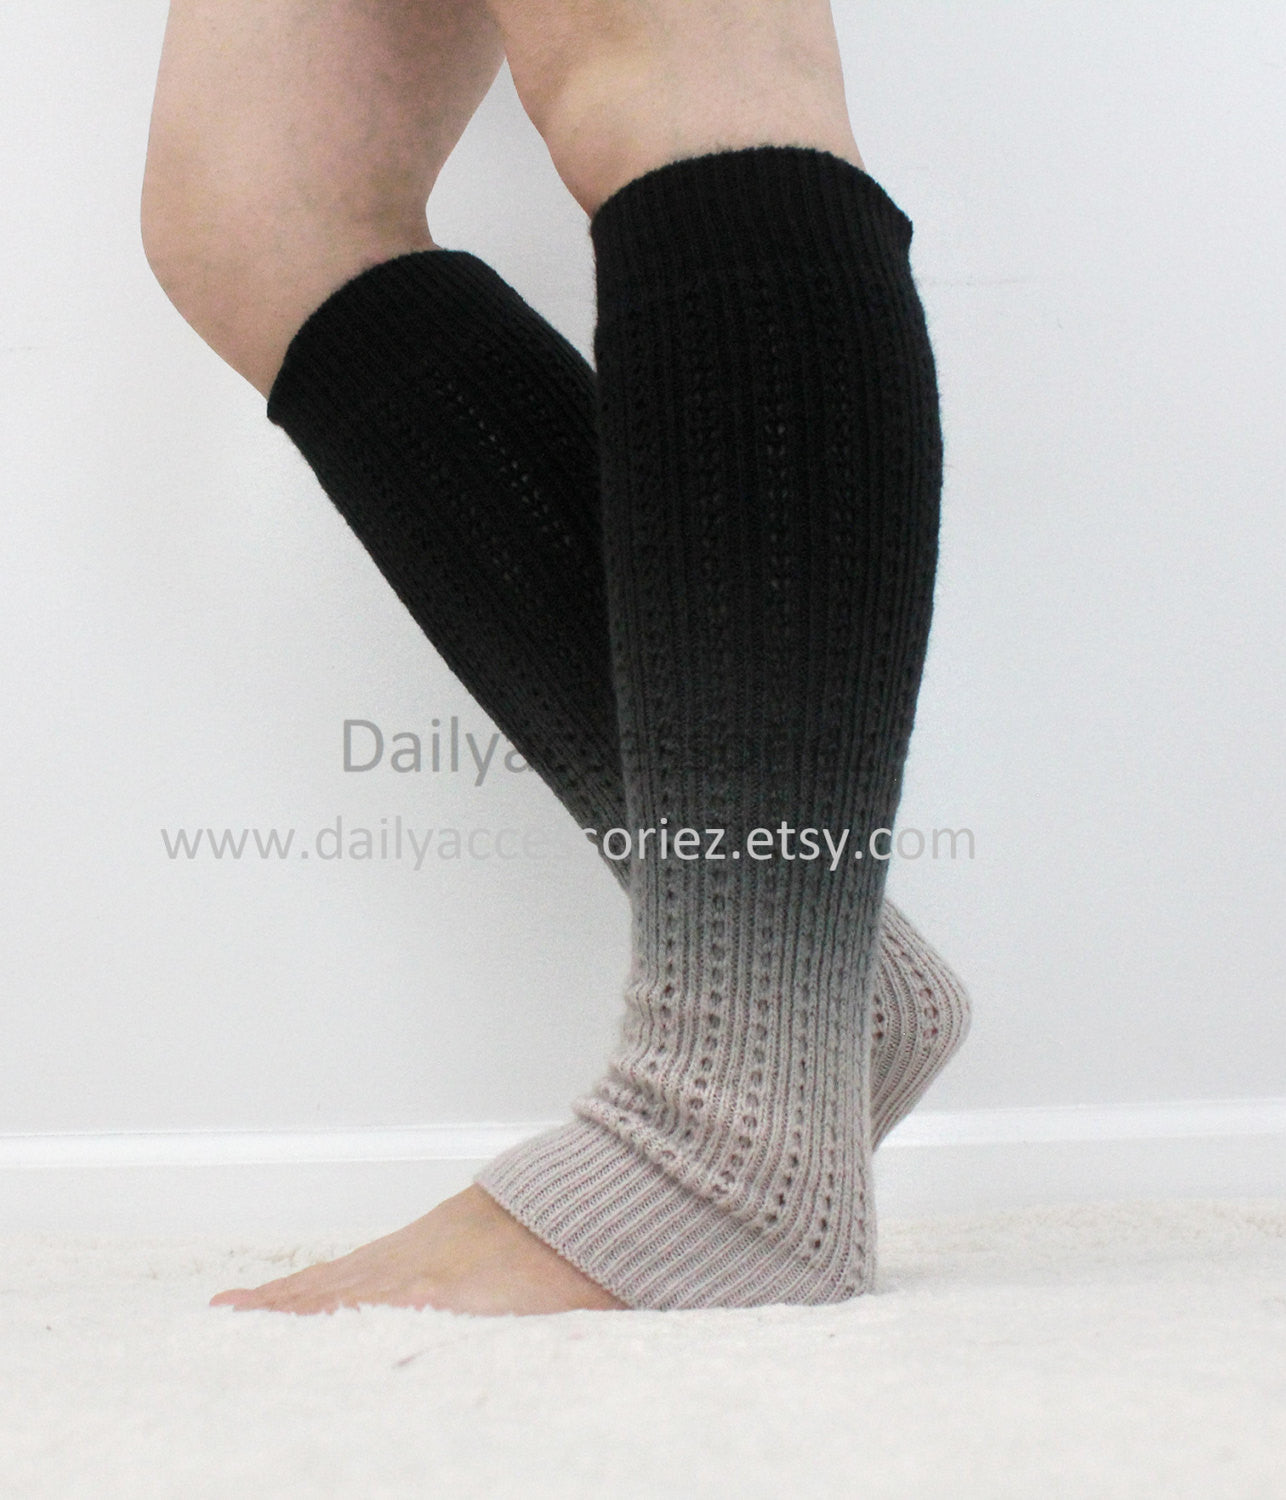 Ombre color womens leg warmers - Bean Concept - Etsy